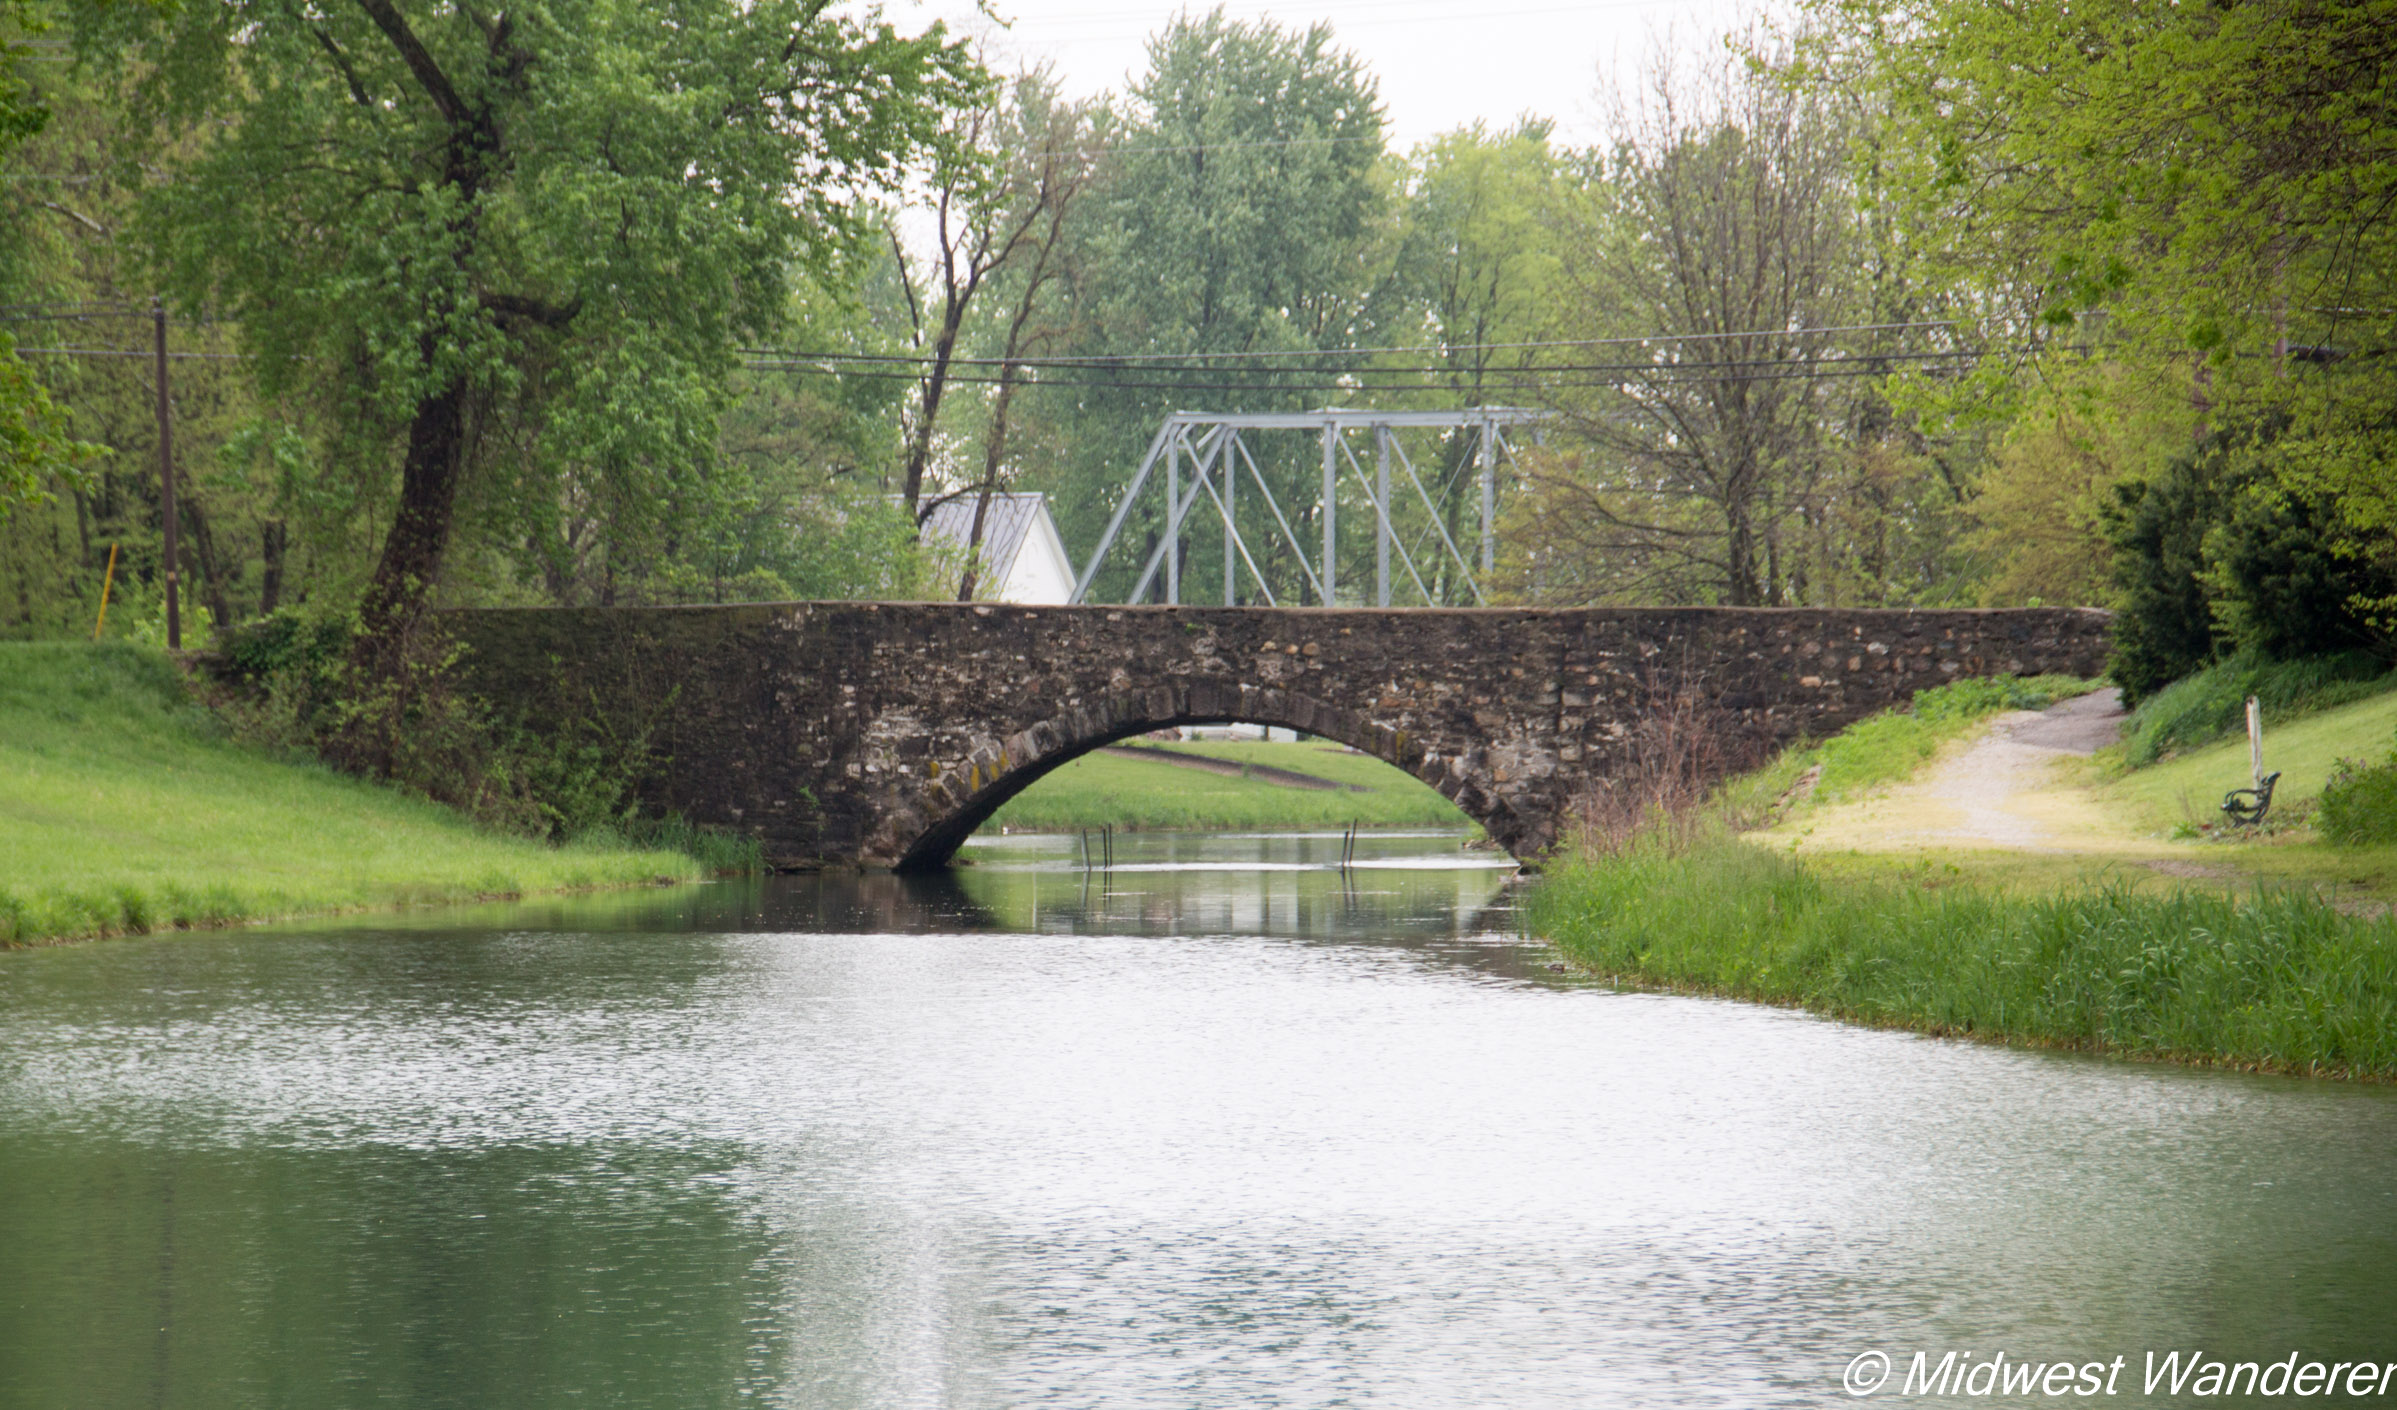 Wabash and Erie Canal historic bridge